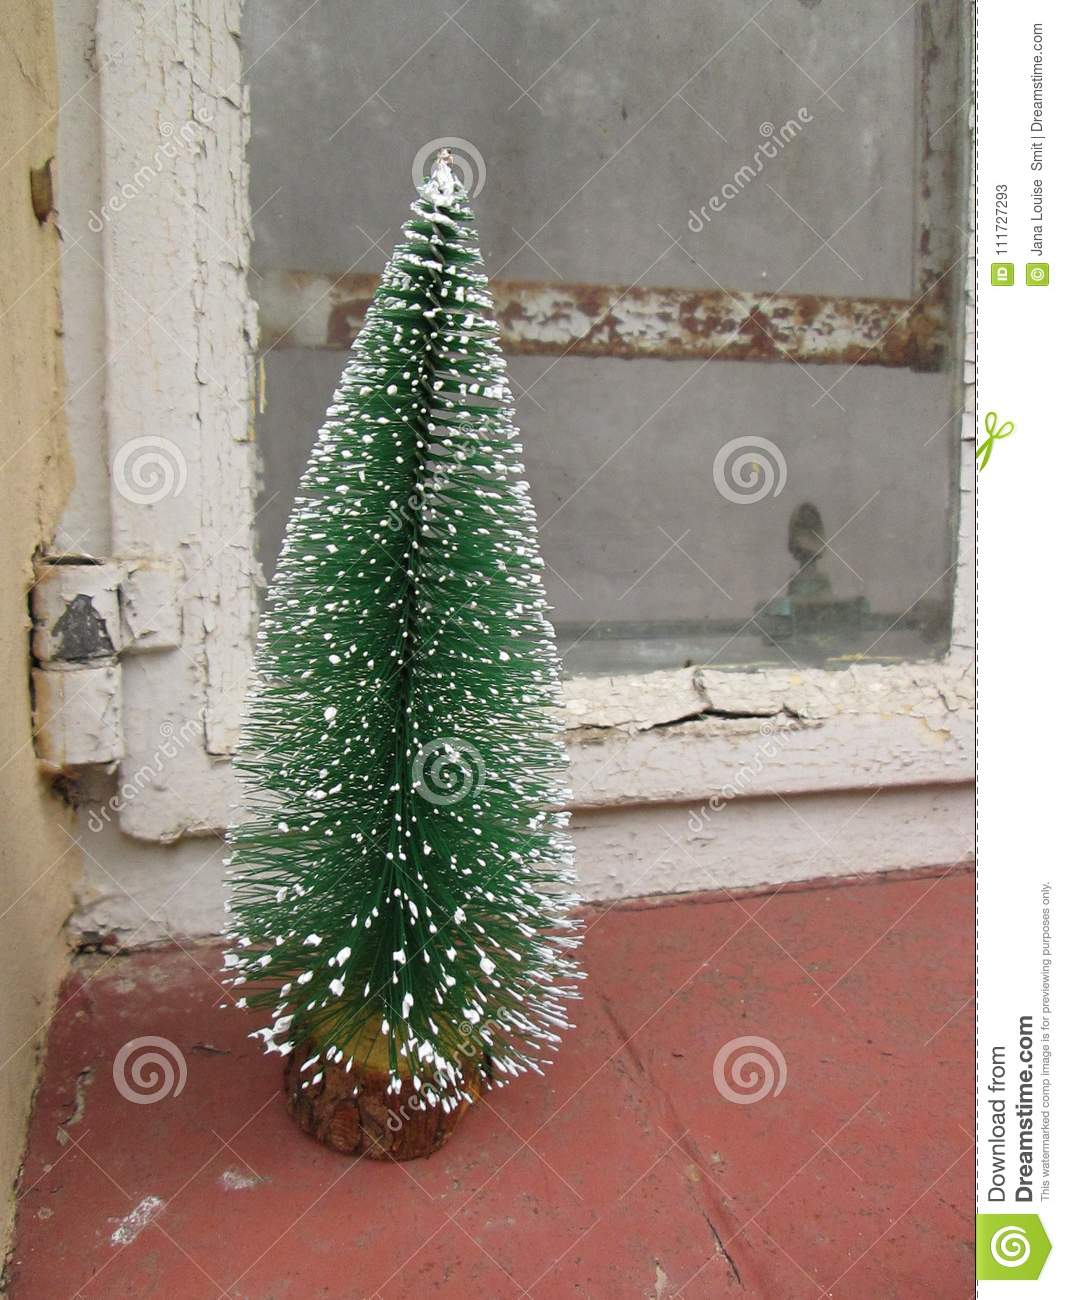 Pagan Christmas Tree.A Small Snow Covered Christmas Tree Stock Image Image Of